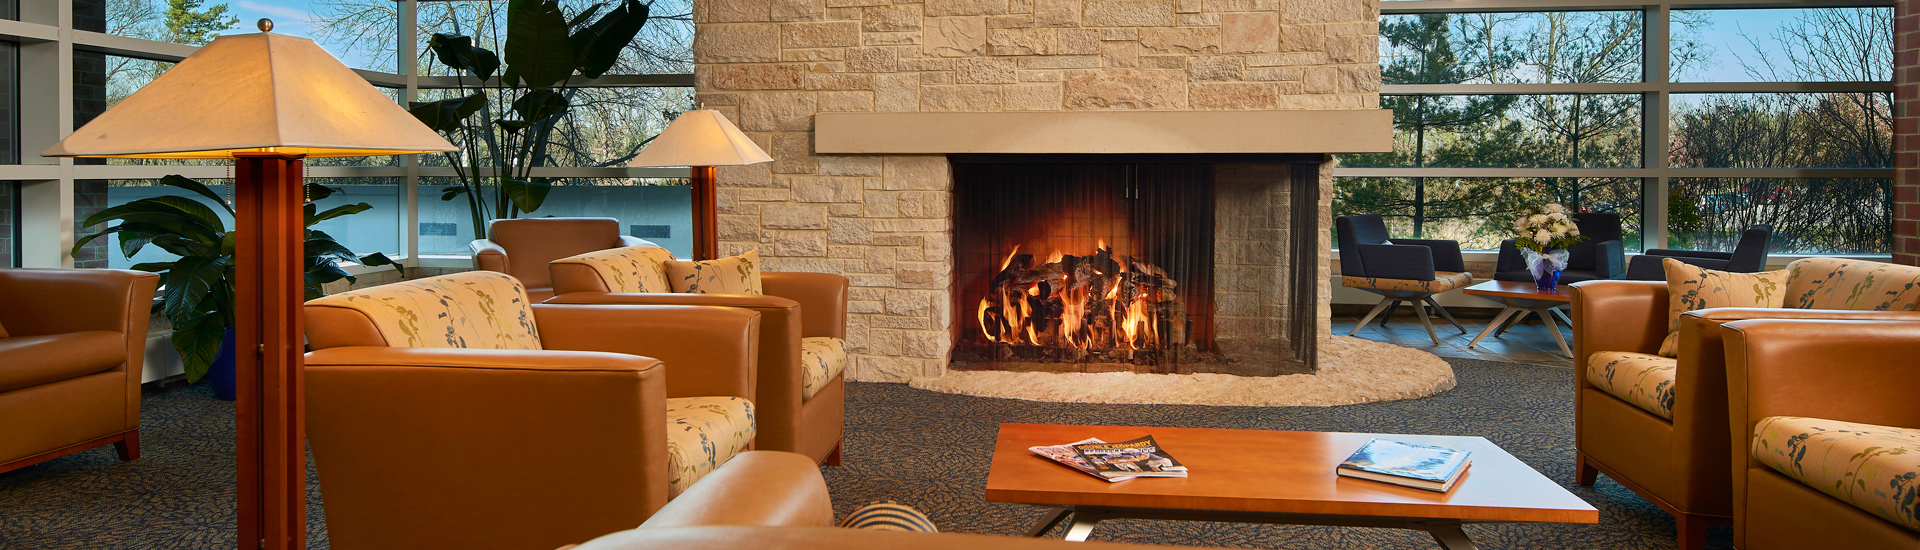 The Penn Stater lobby fireplace